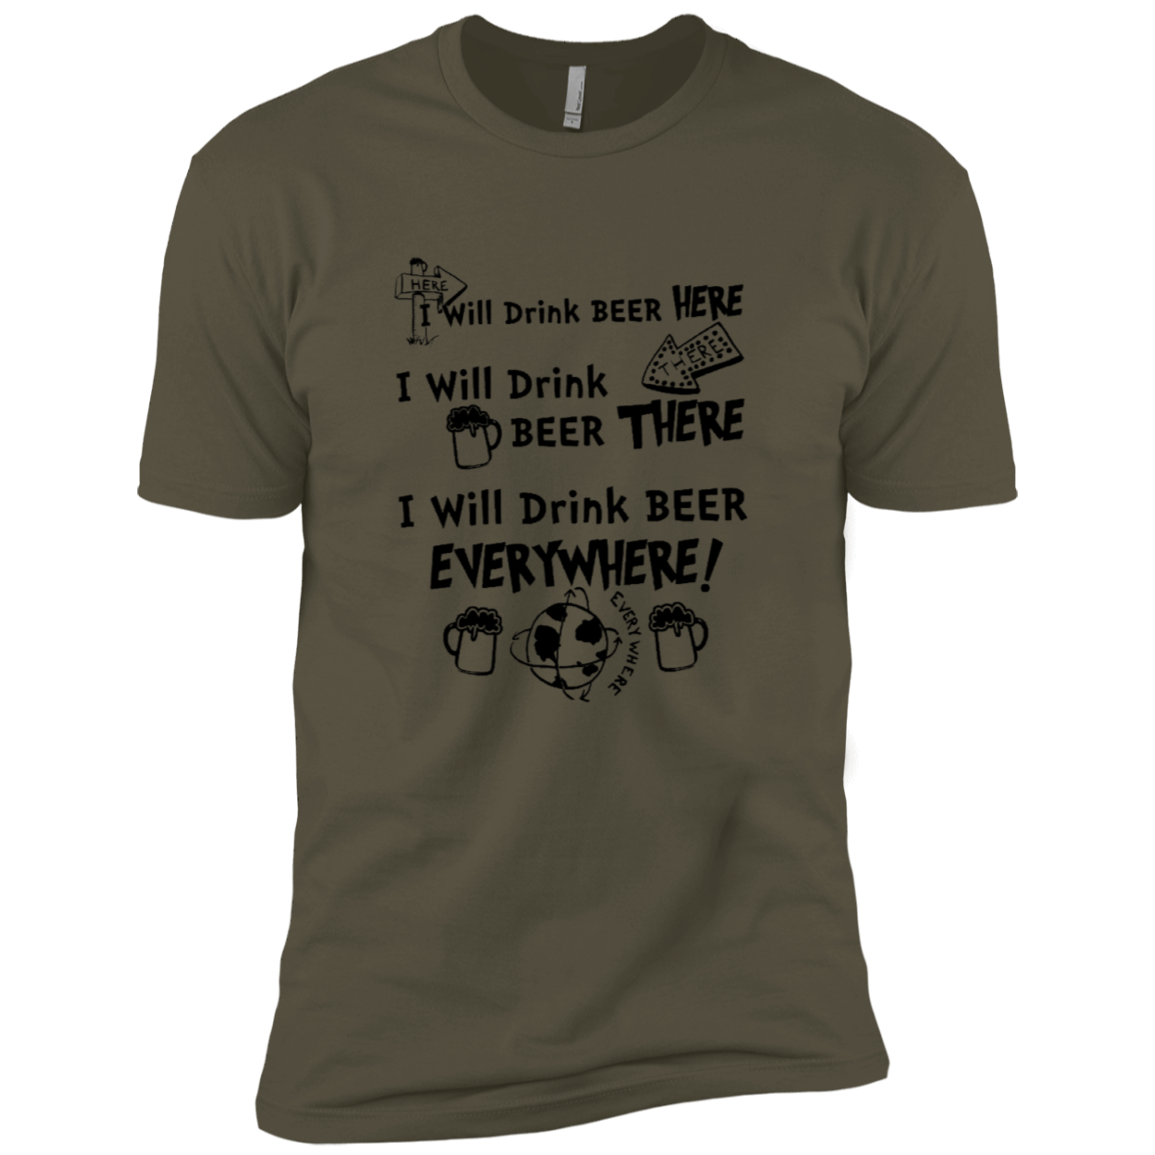 I Will Drink Beer Here I Will Drink Beer There I Will Drink Beer Everywhere Men's Classic Tee